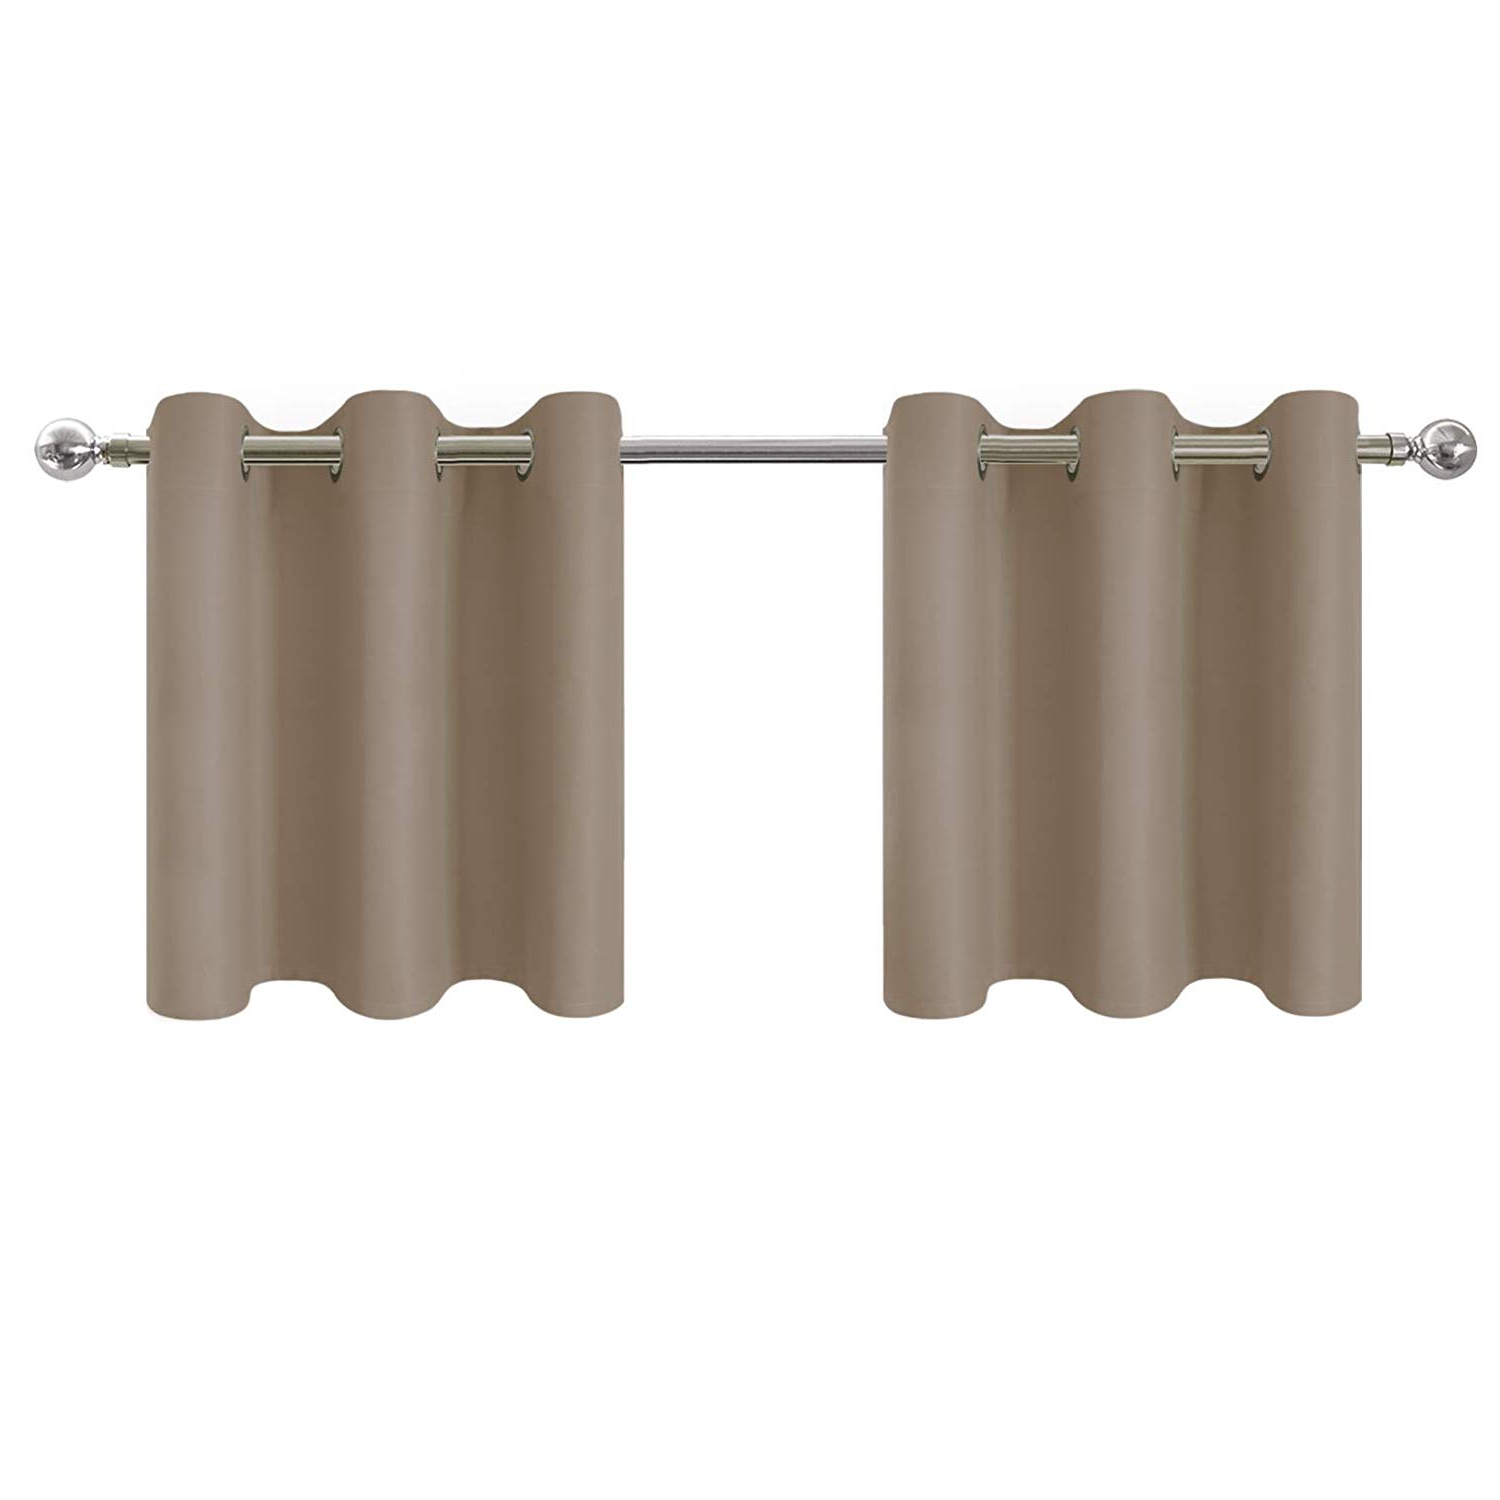 Most Current Aquazolax Taupe Window Valances Short Curtains Drapes For Kitchen – Energy Smart Eyelet Top Solid Thermal Insulated Blackout Curtain Tiers, 42w24l Throughout Luxurious Kitchen Curtains Tiers, Shade Or Valances (View 6 of 20)